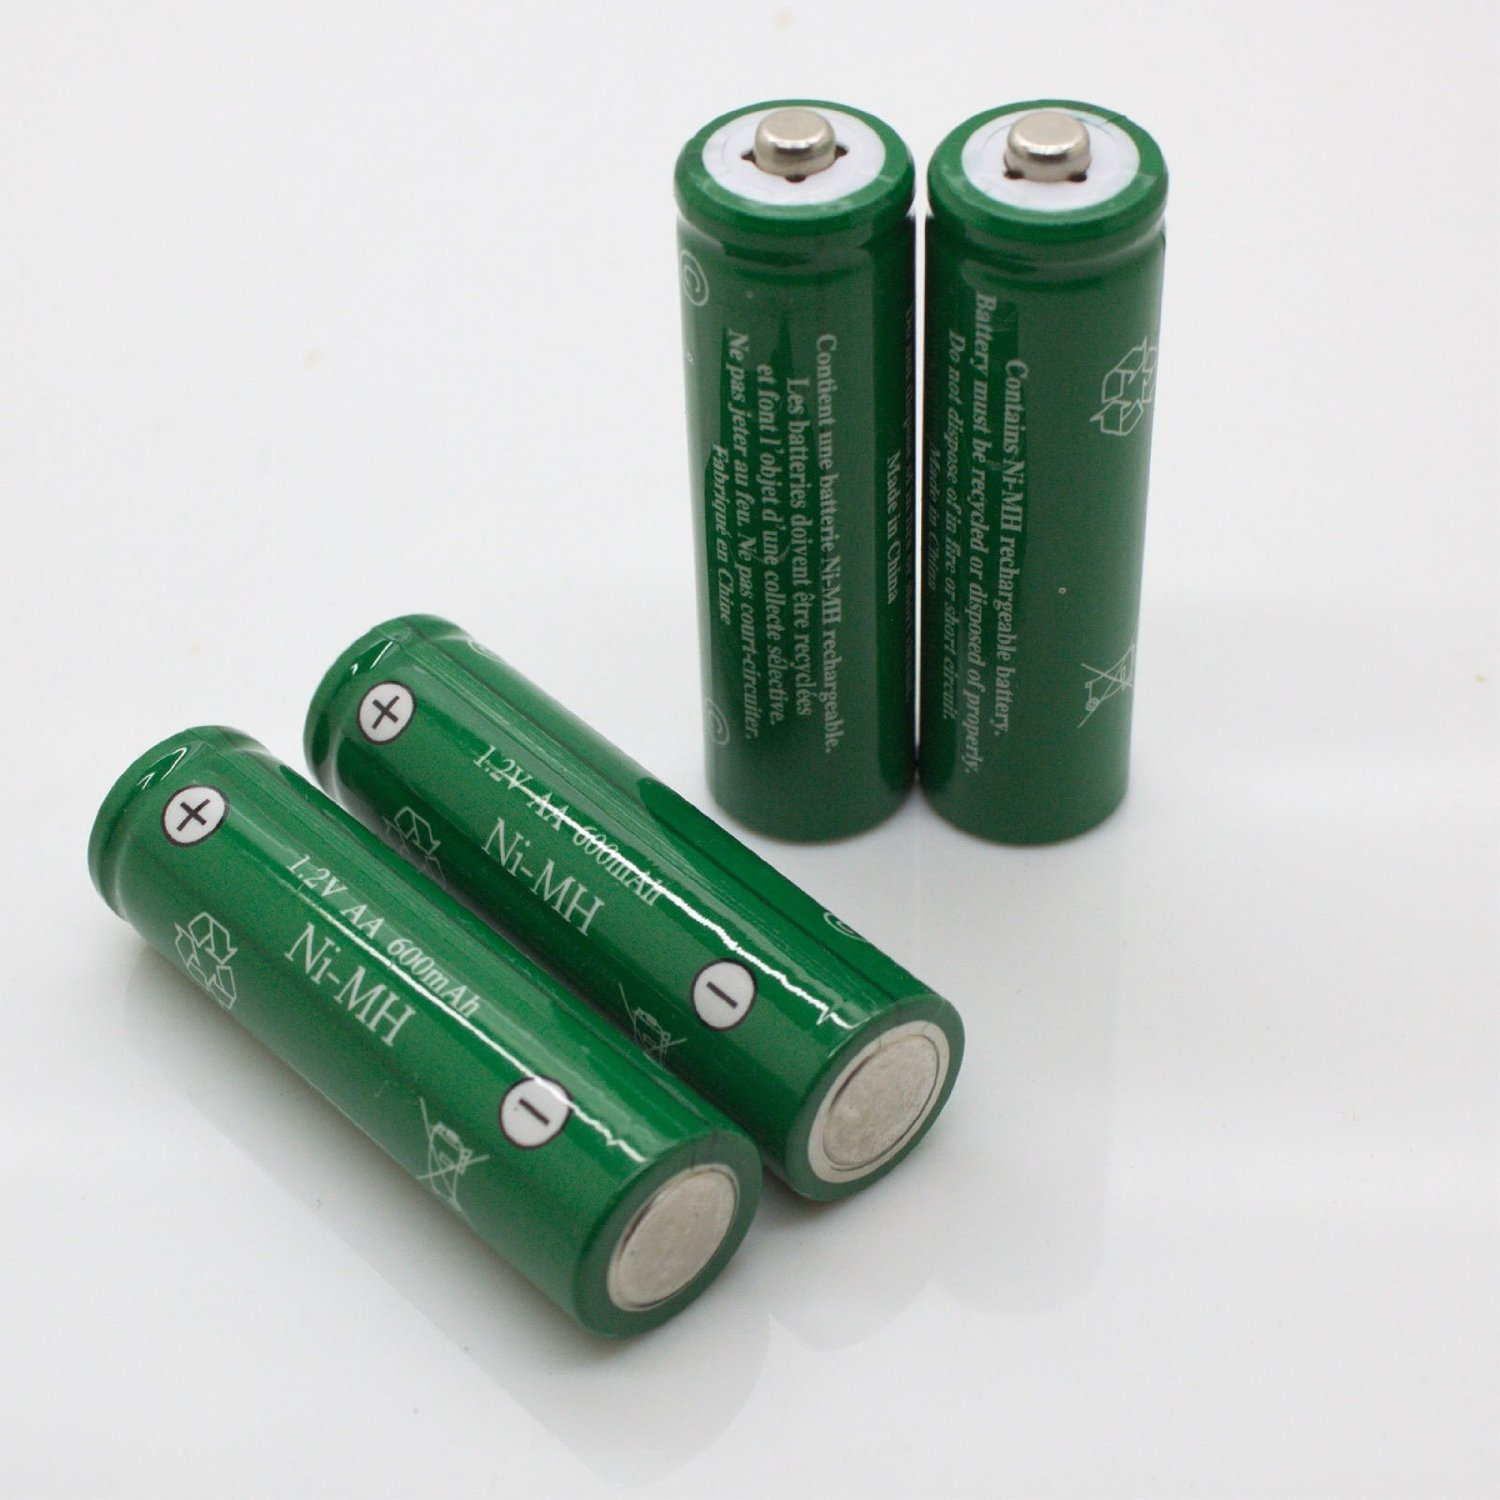 AA Ni-MH 600mAh Rechargable Batteries for Solar Powered Units (12-Pack)